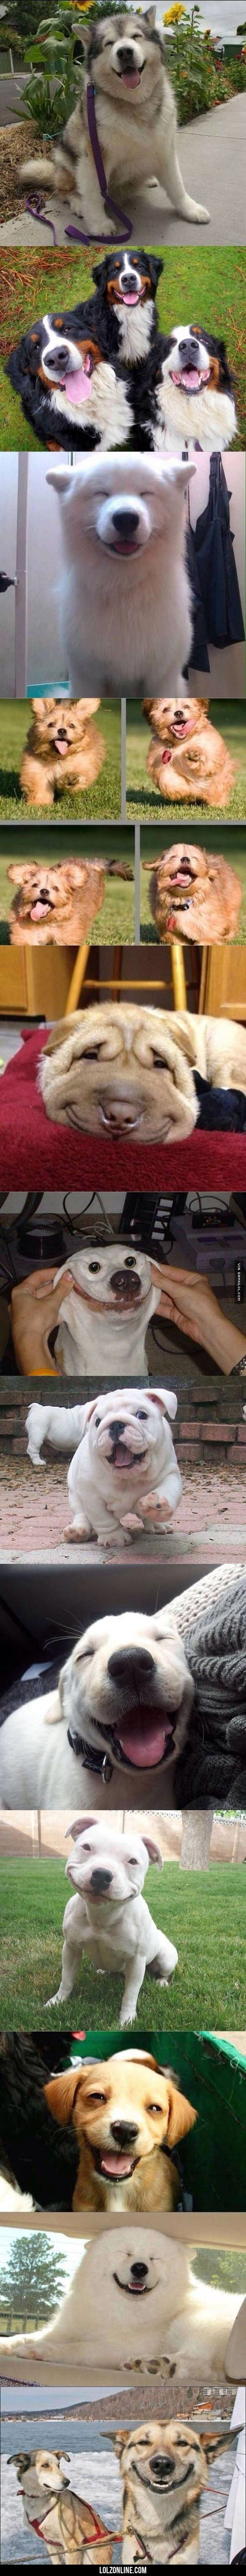 Best Smiling Dogs On The Internet#funny #lol #lolzonline